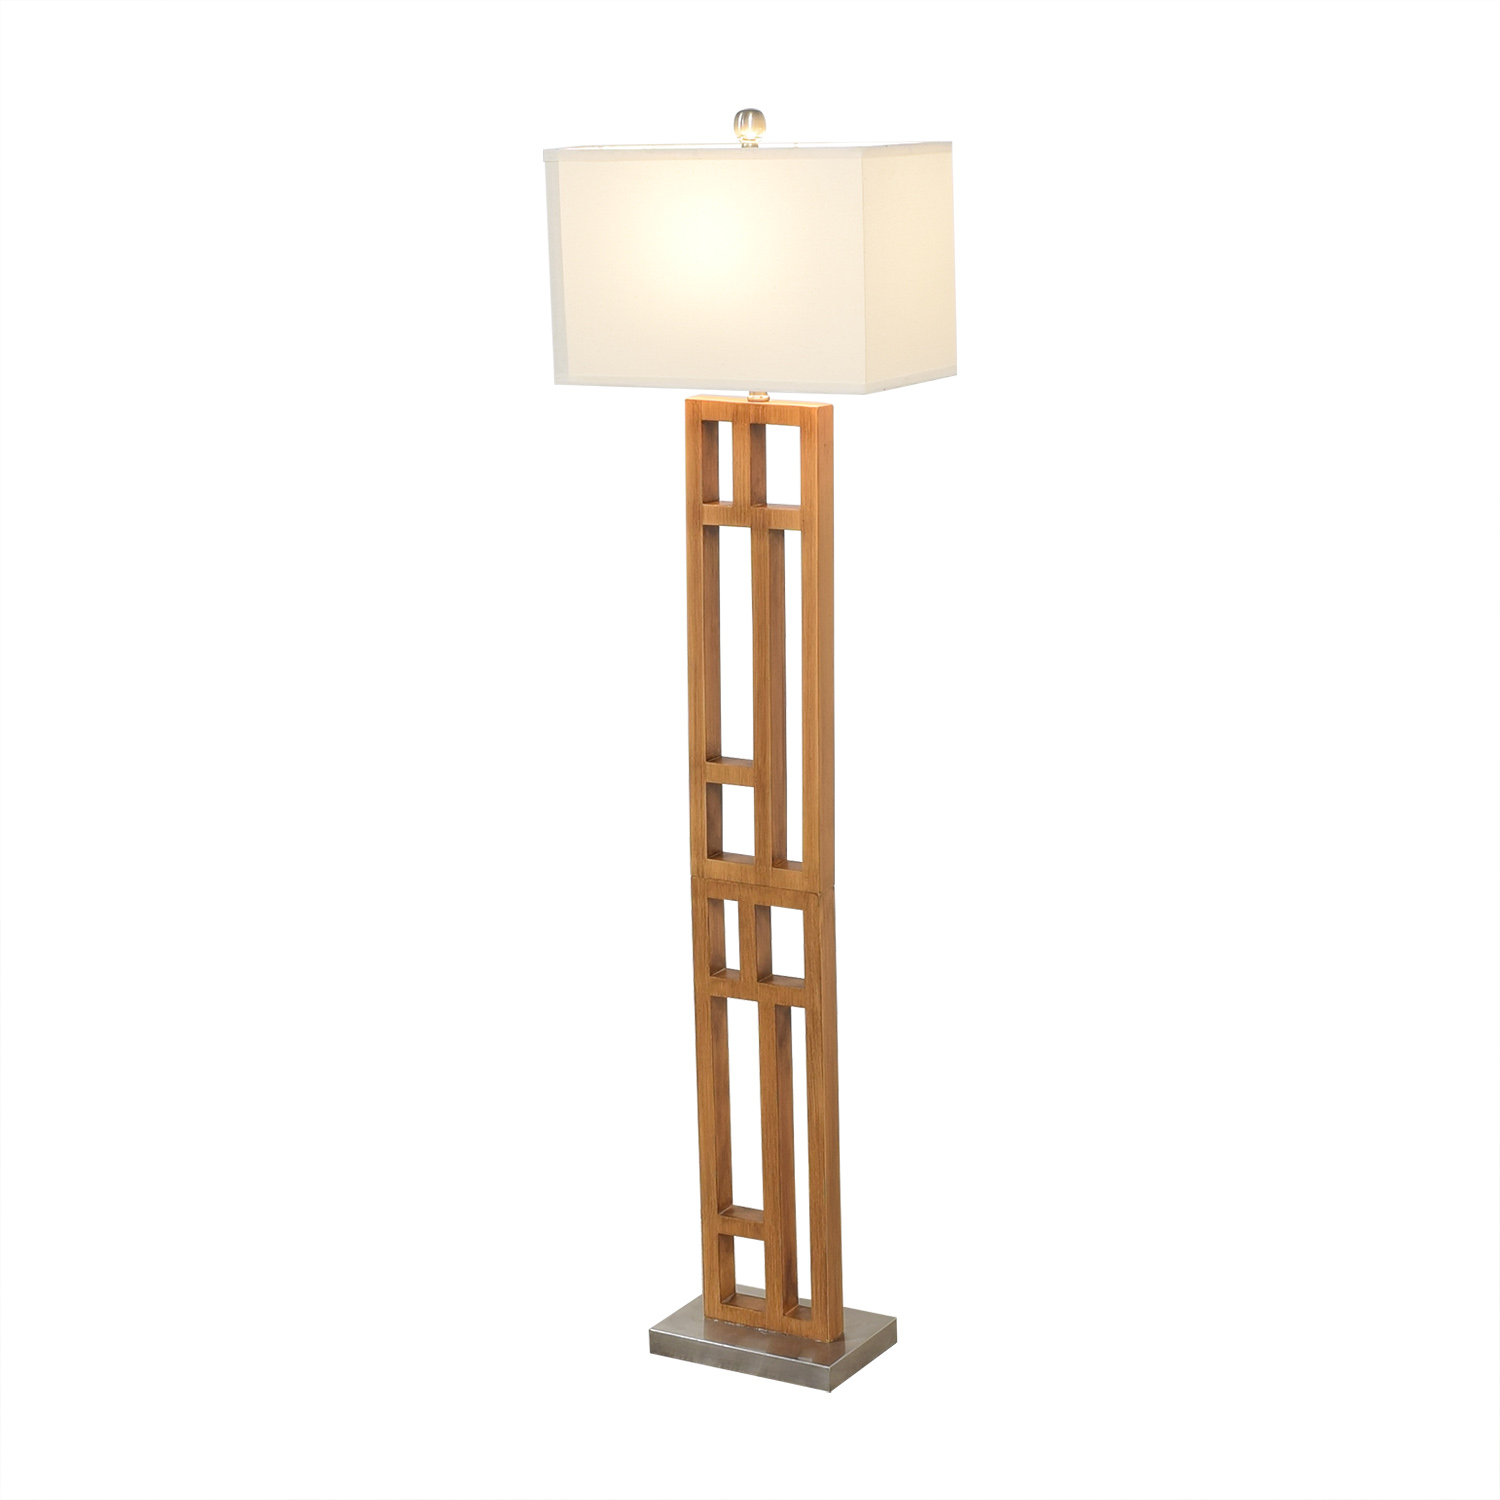 Joss & Main Wood and Stainless Steel Floor Lamp / Lamps